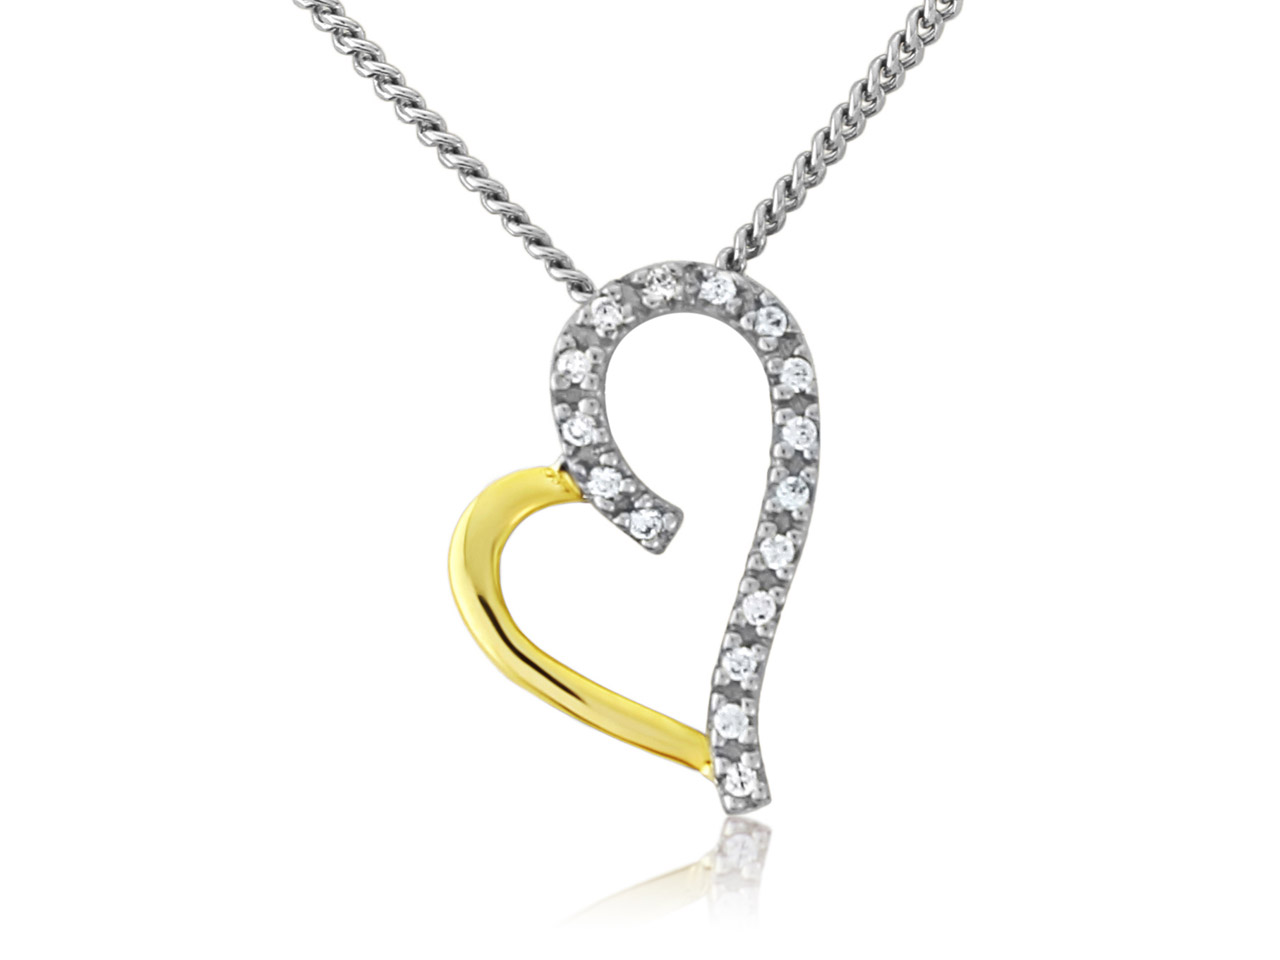 Sterling Silver 9ct Yellow         Cubic Zirconia Set Heart Pendant   And Chain